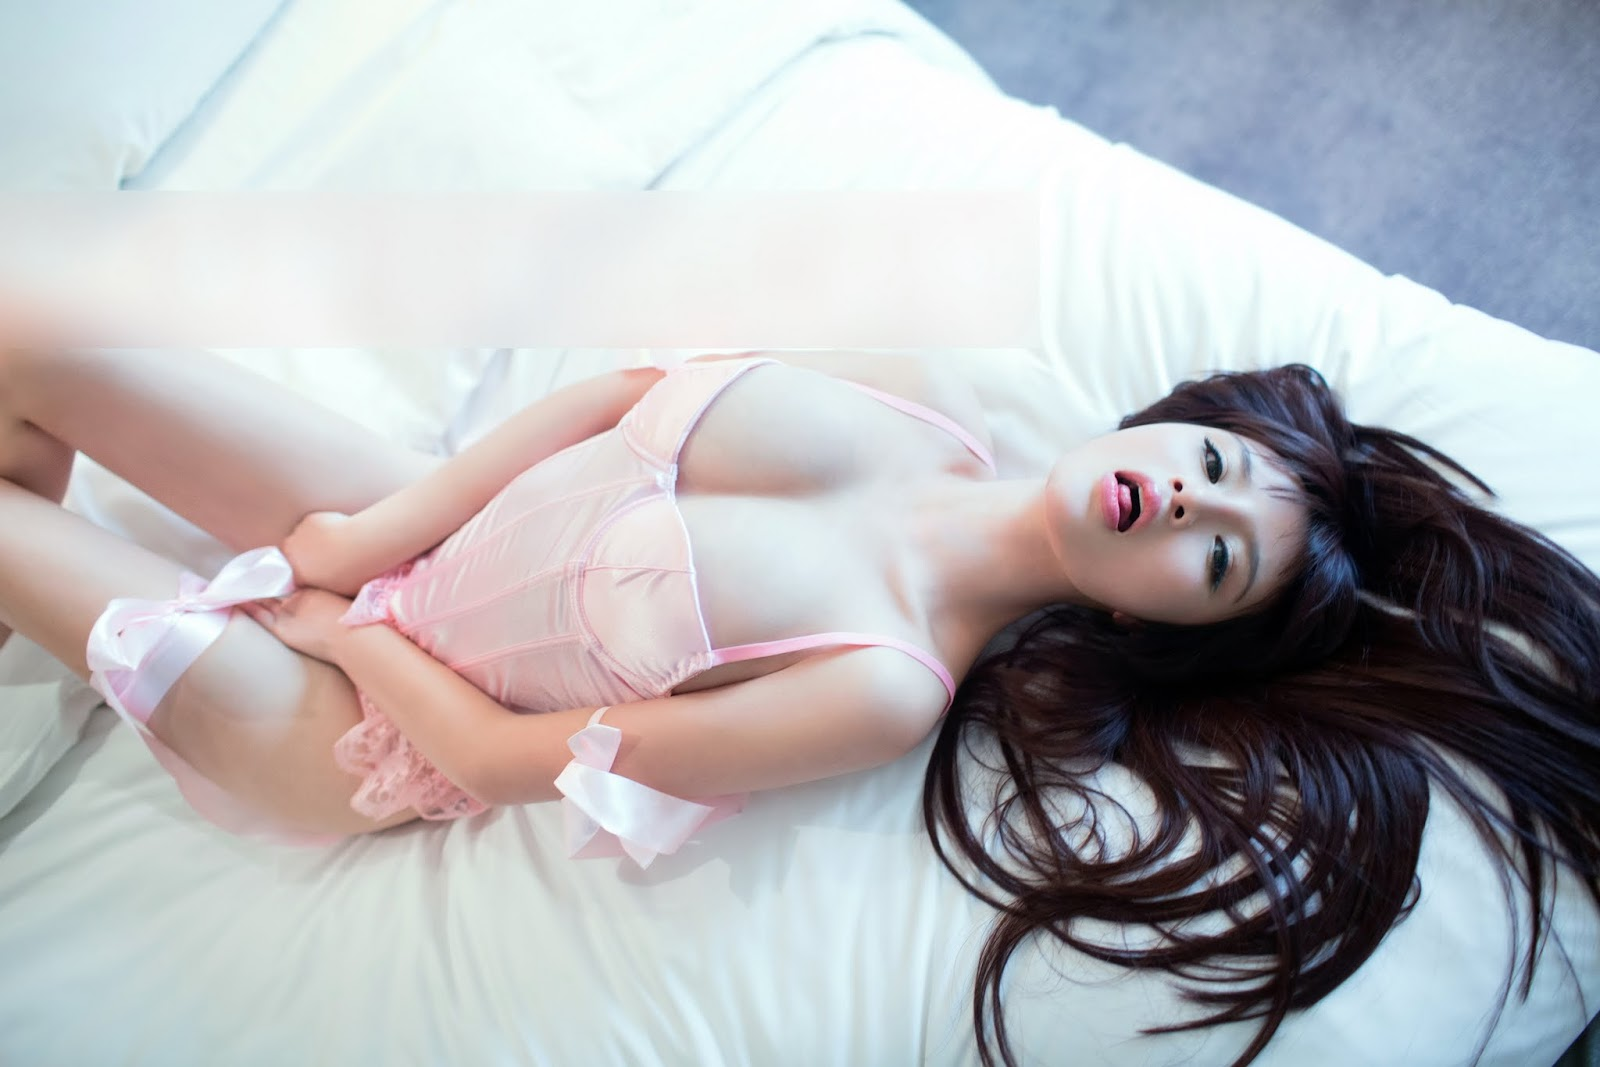 10 - Hot Girl Big TIts TUIGIRL NO.38 Asian Naked